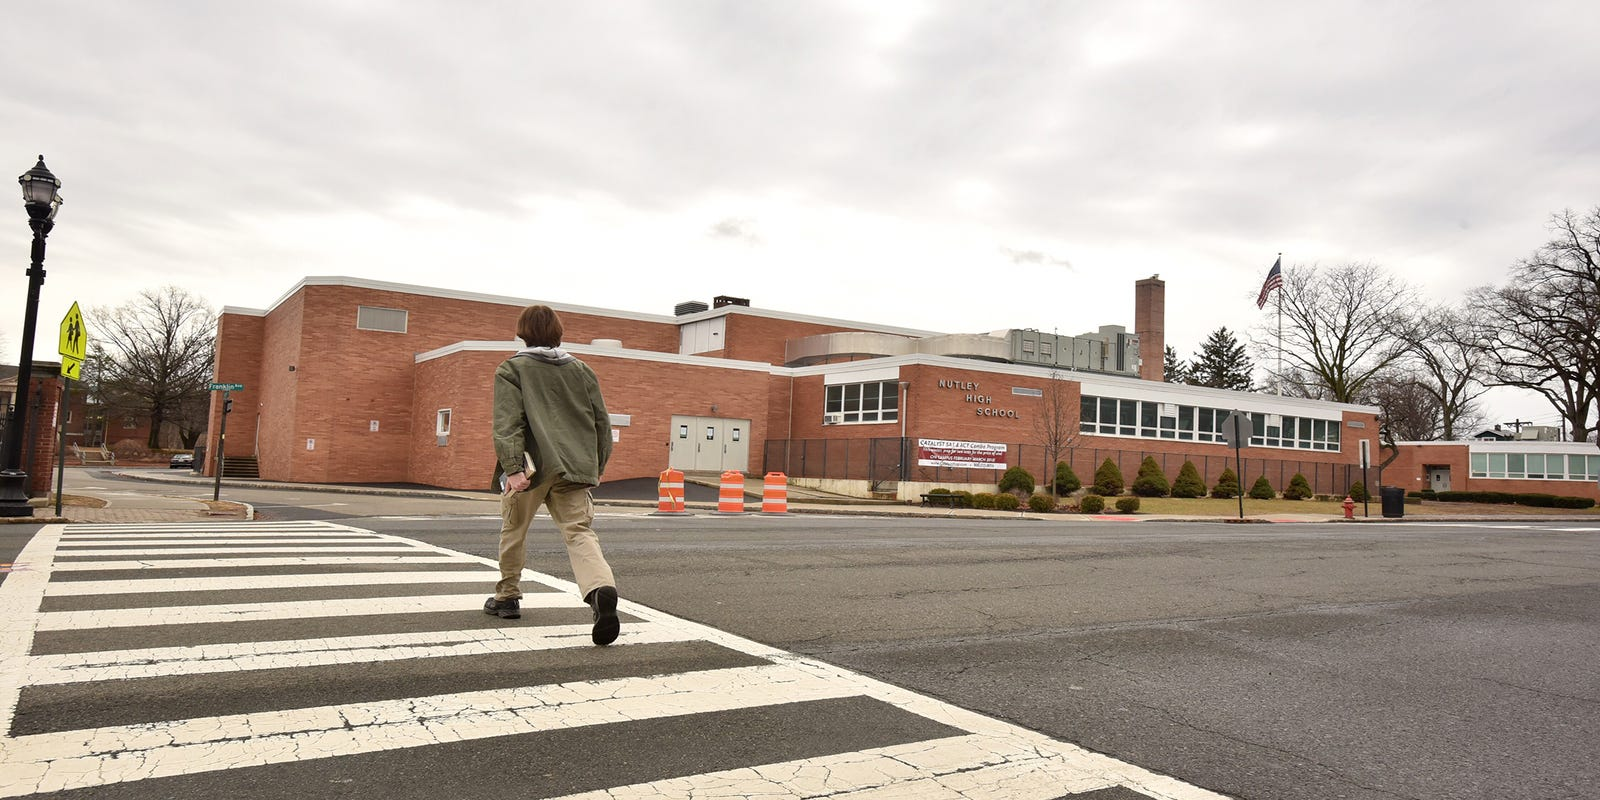 Nutley parents ask for armed guards in schools after security threat